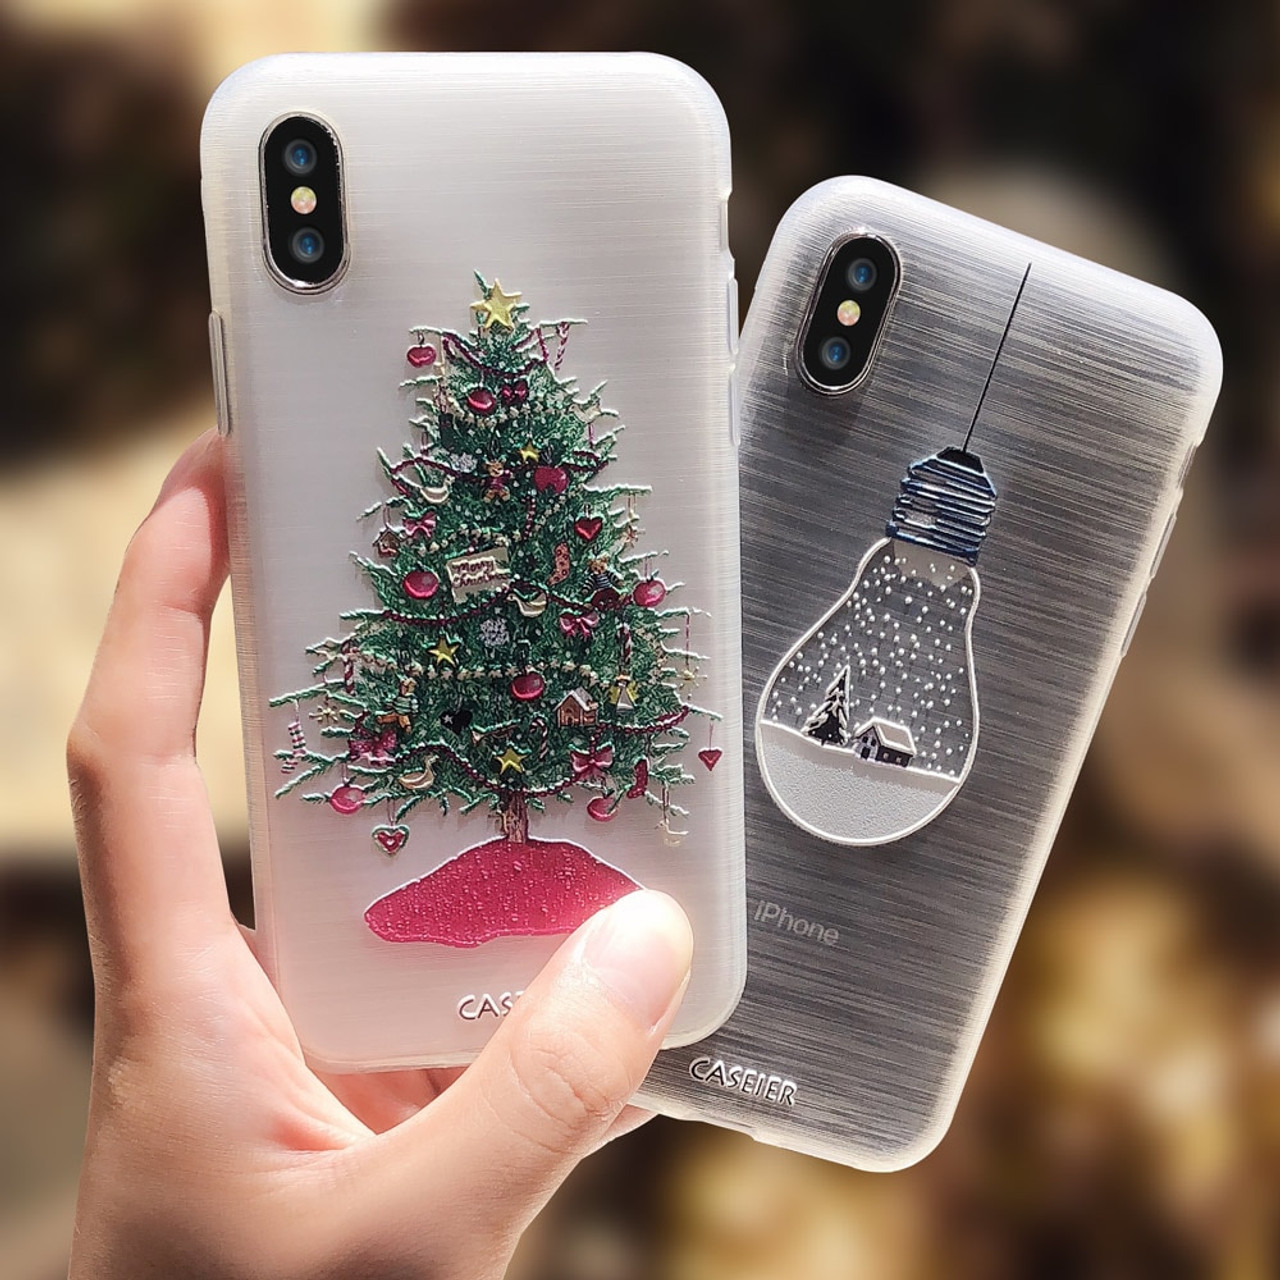 Christmas Phone Case Iphone Xr.Caseier Girly Christmas Phone Case For Iphone 5 Se 6 6s 7 8 Plus X Cute Emboss Soft Tpu Covers For Iphone X Xs Max Xr 5s 7 Plus